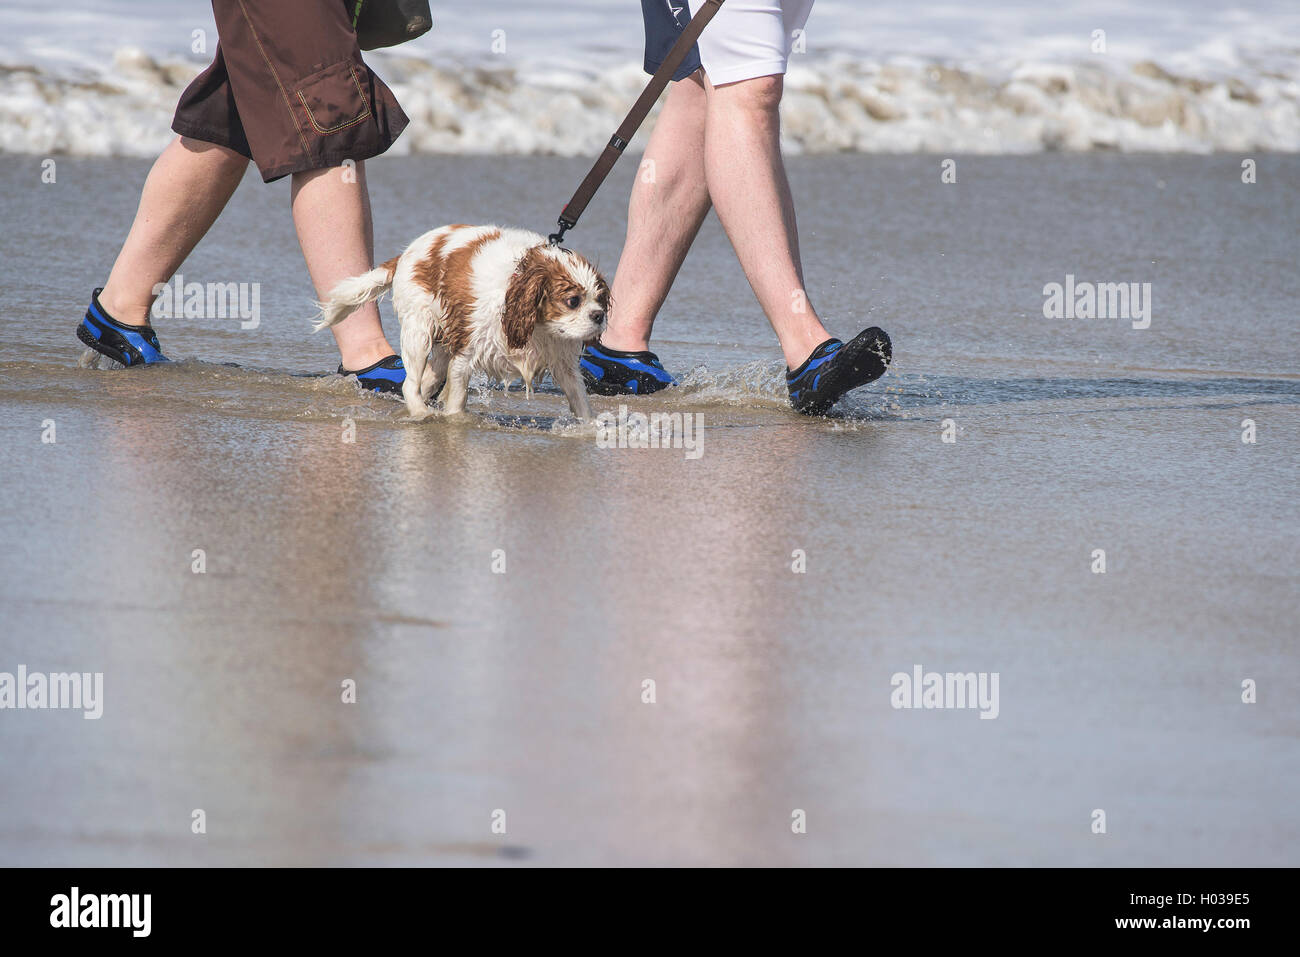 An unhappy looking dog is taken for a paddle on Fistral Beach in Newquay, Cornwall. - Stock Image